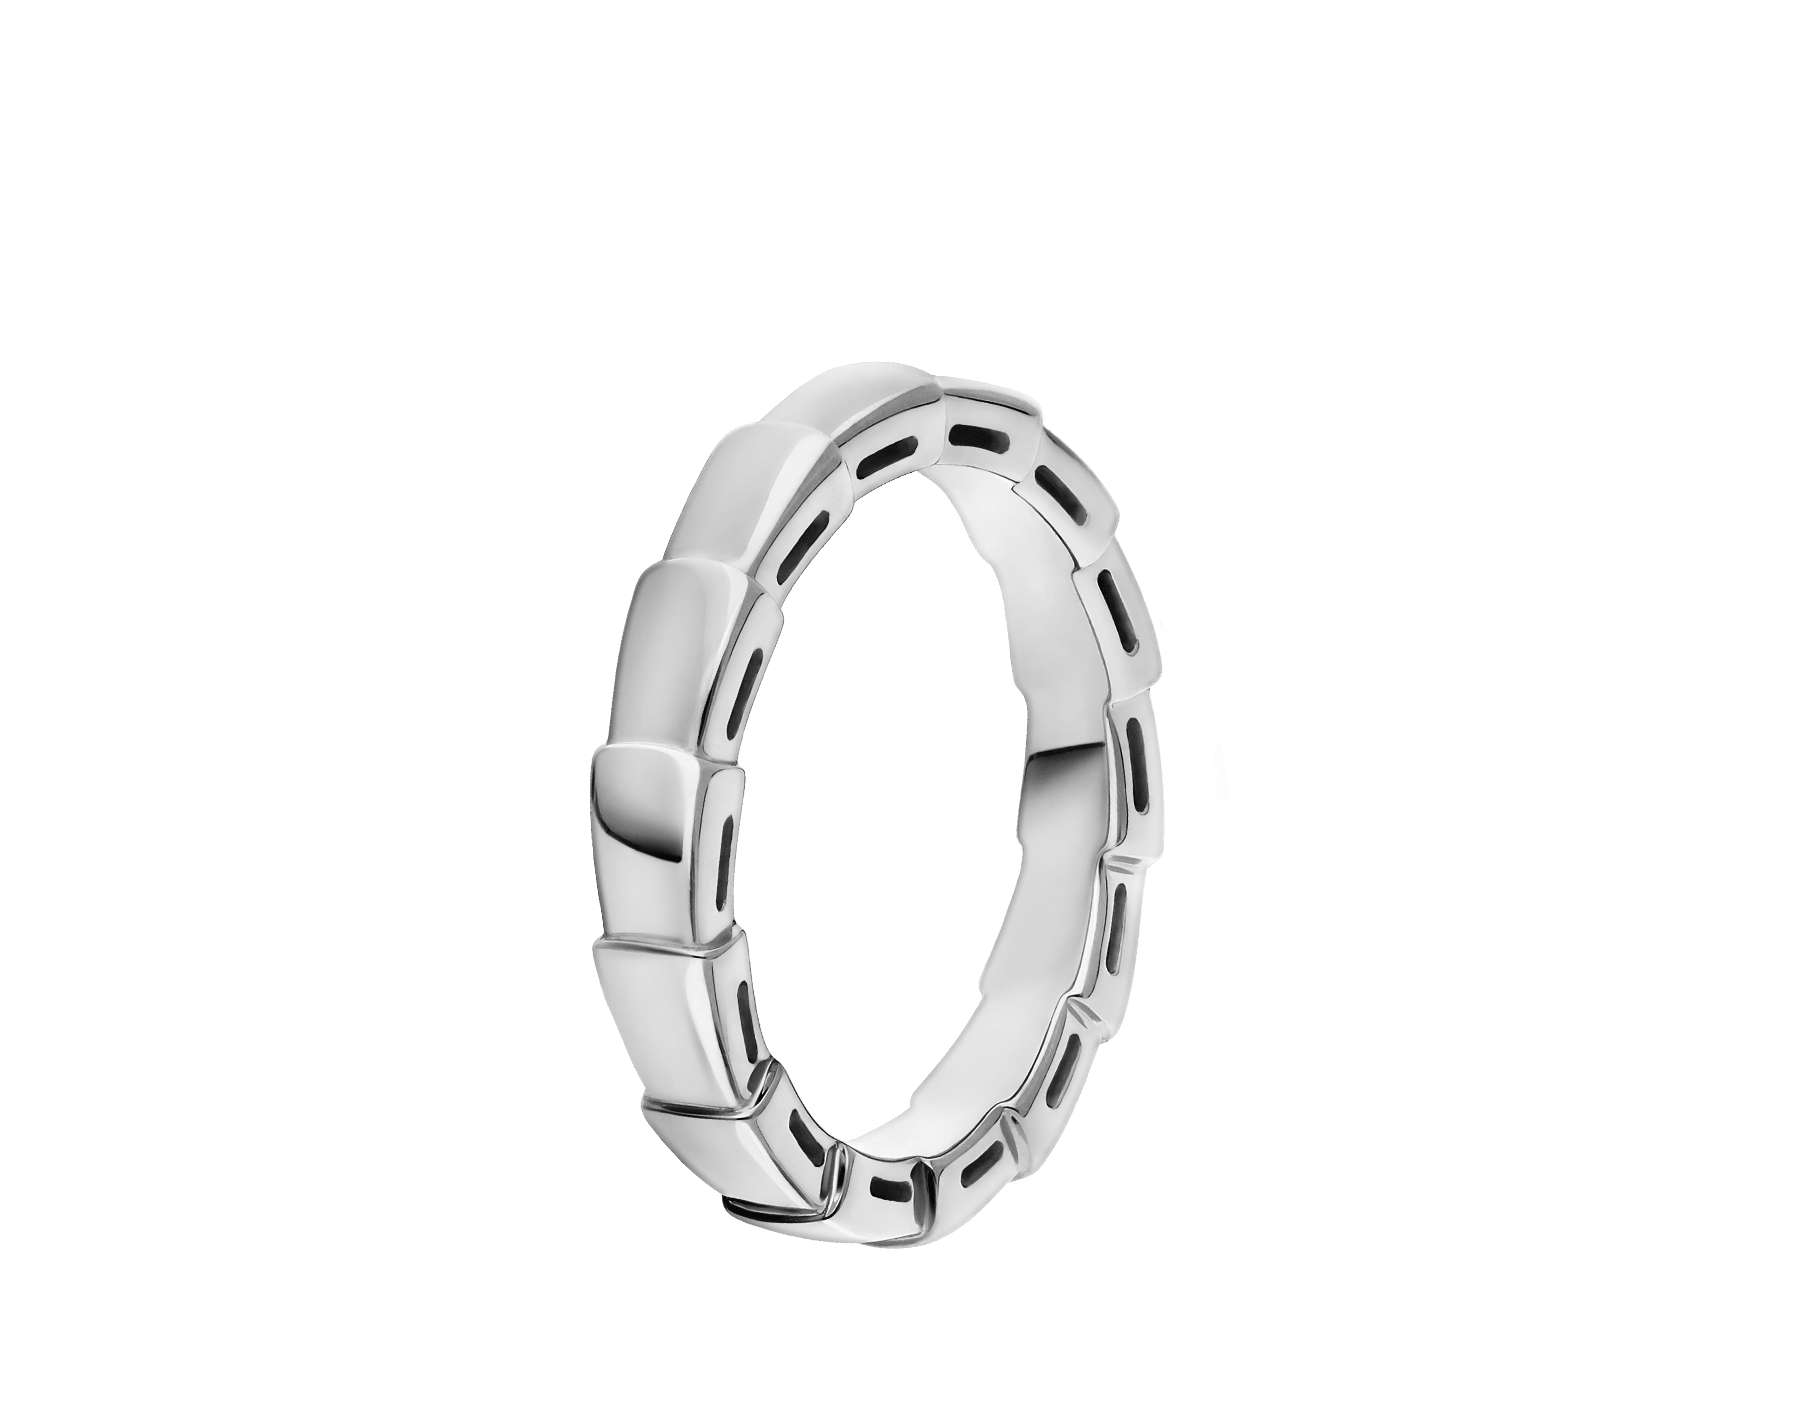 Serpenti Viper wedding band in 18 kt white gold. AN856869 image 1